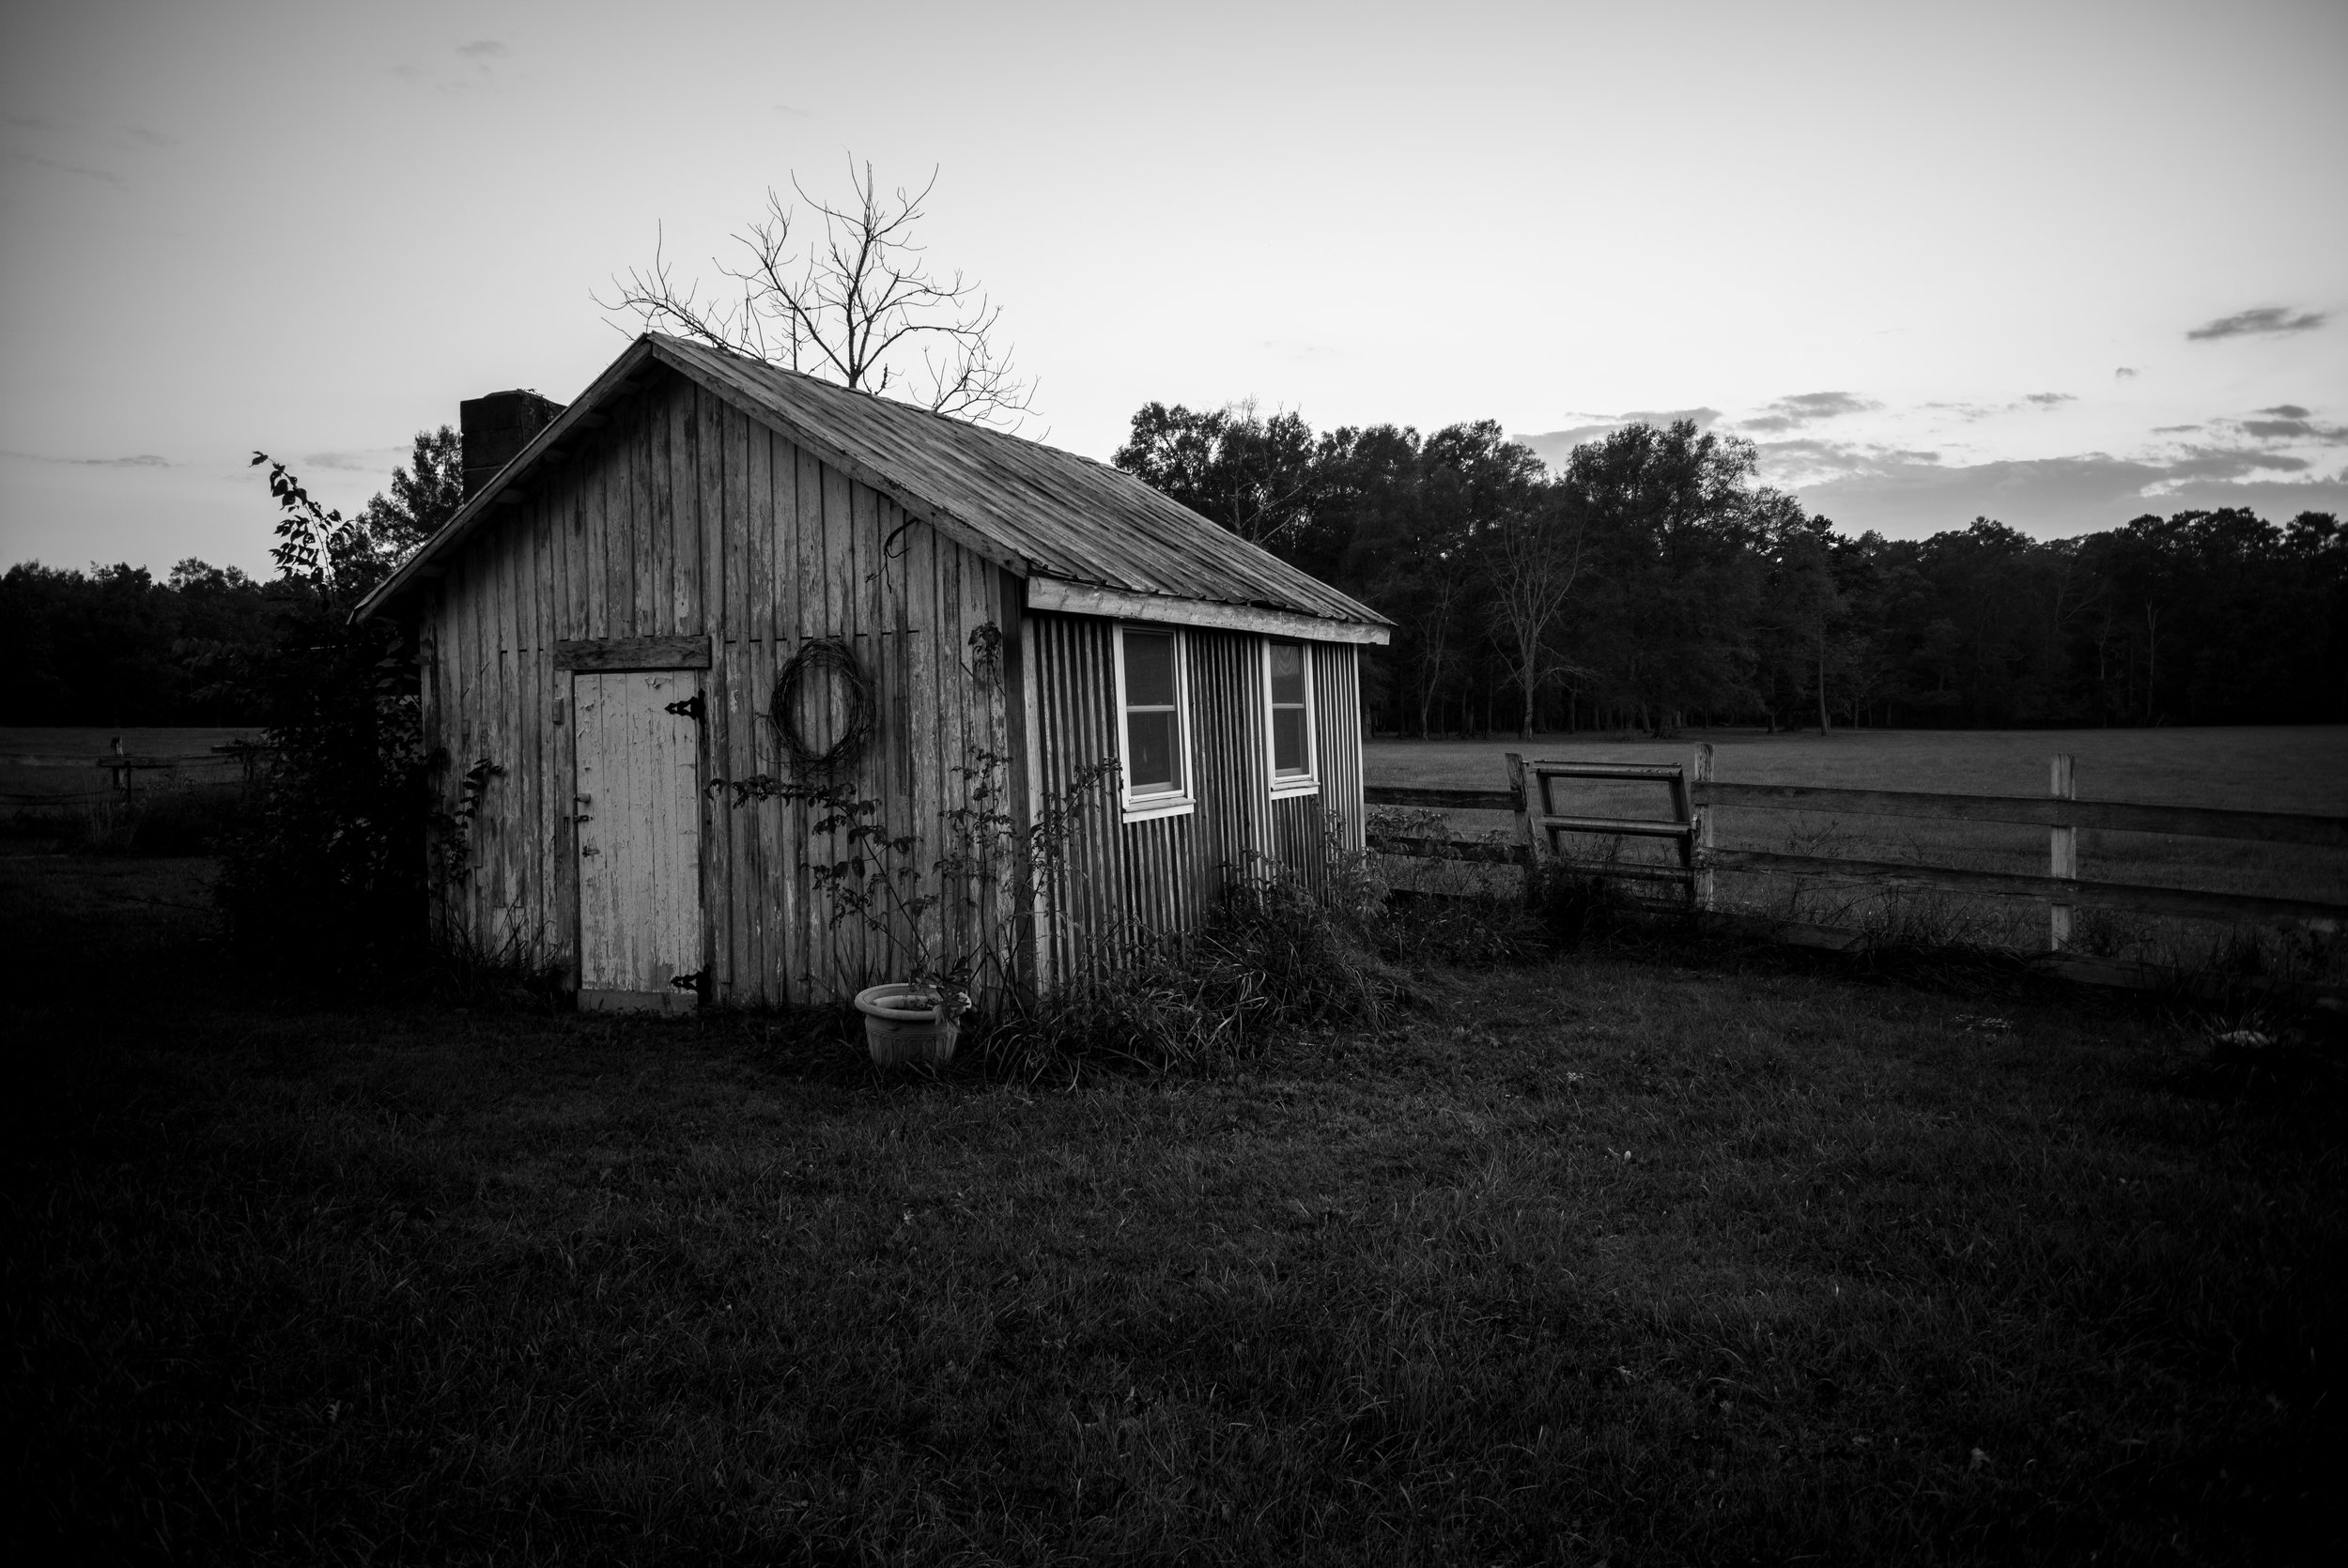 A shed sitting along the edge of the property.